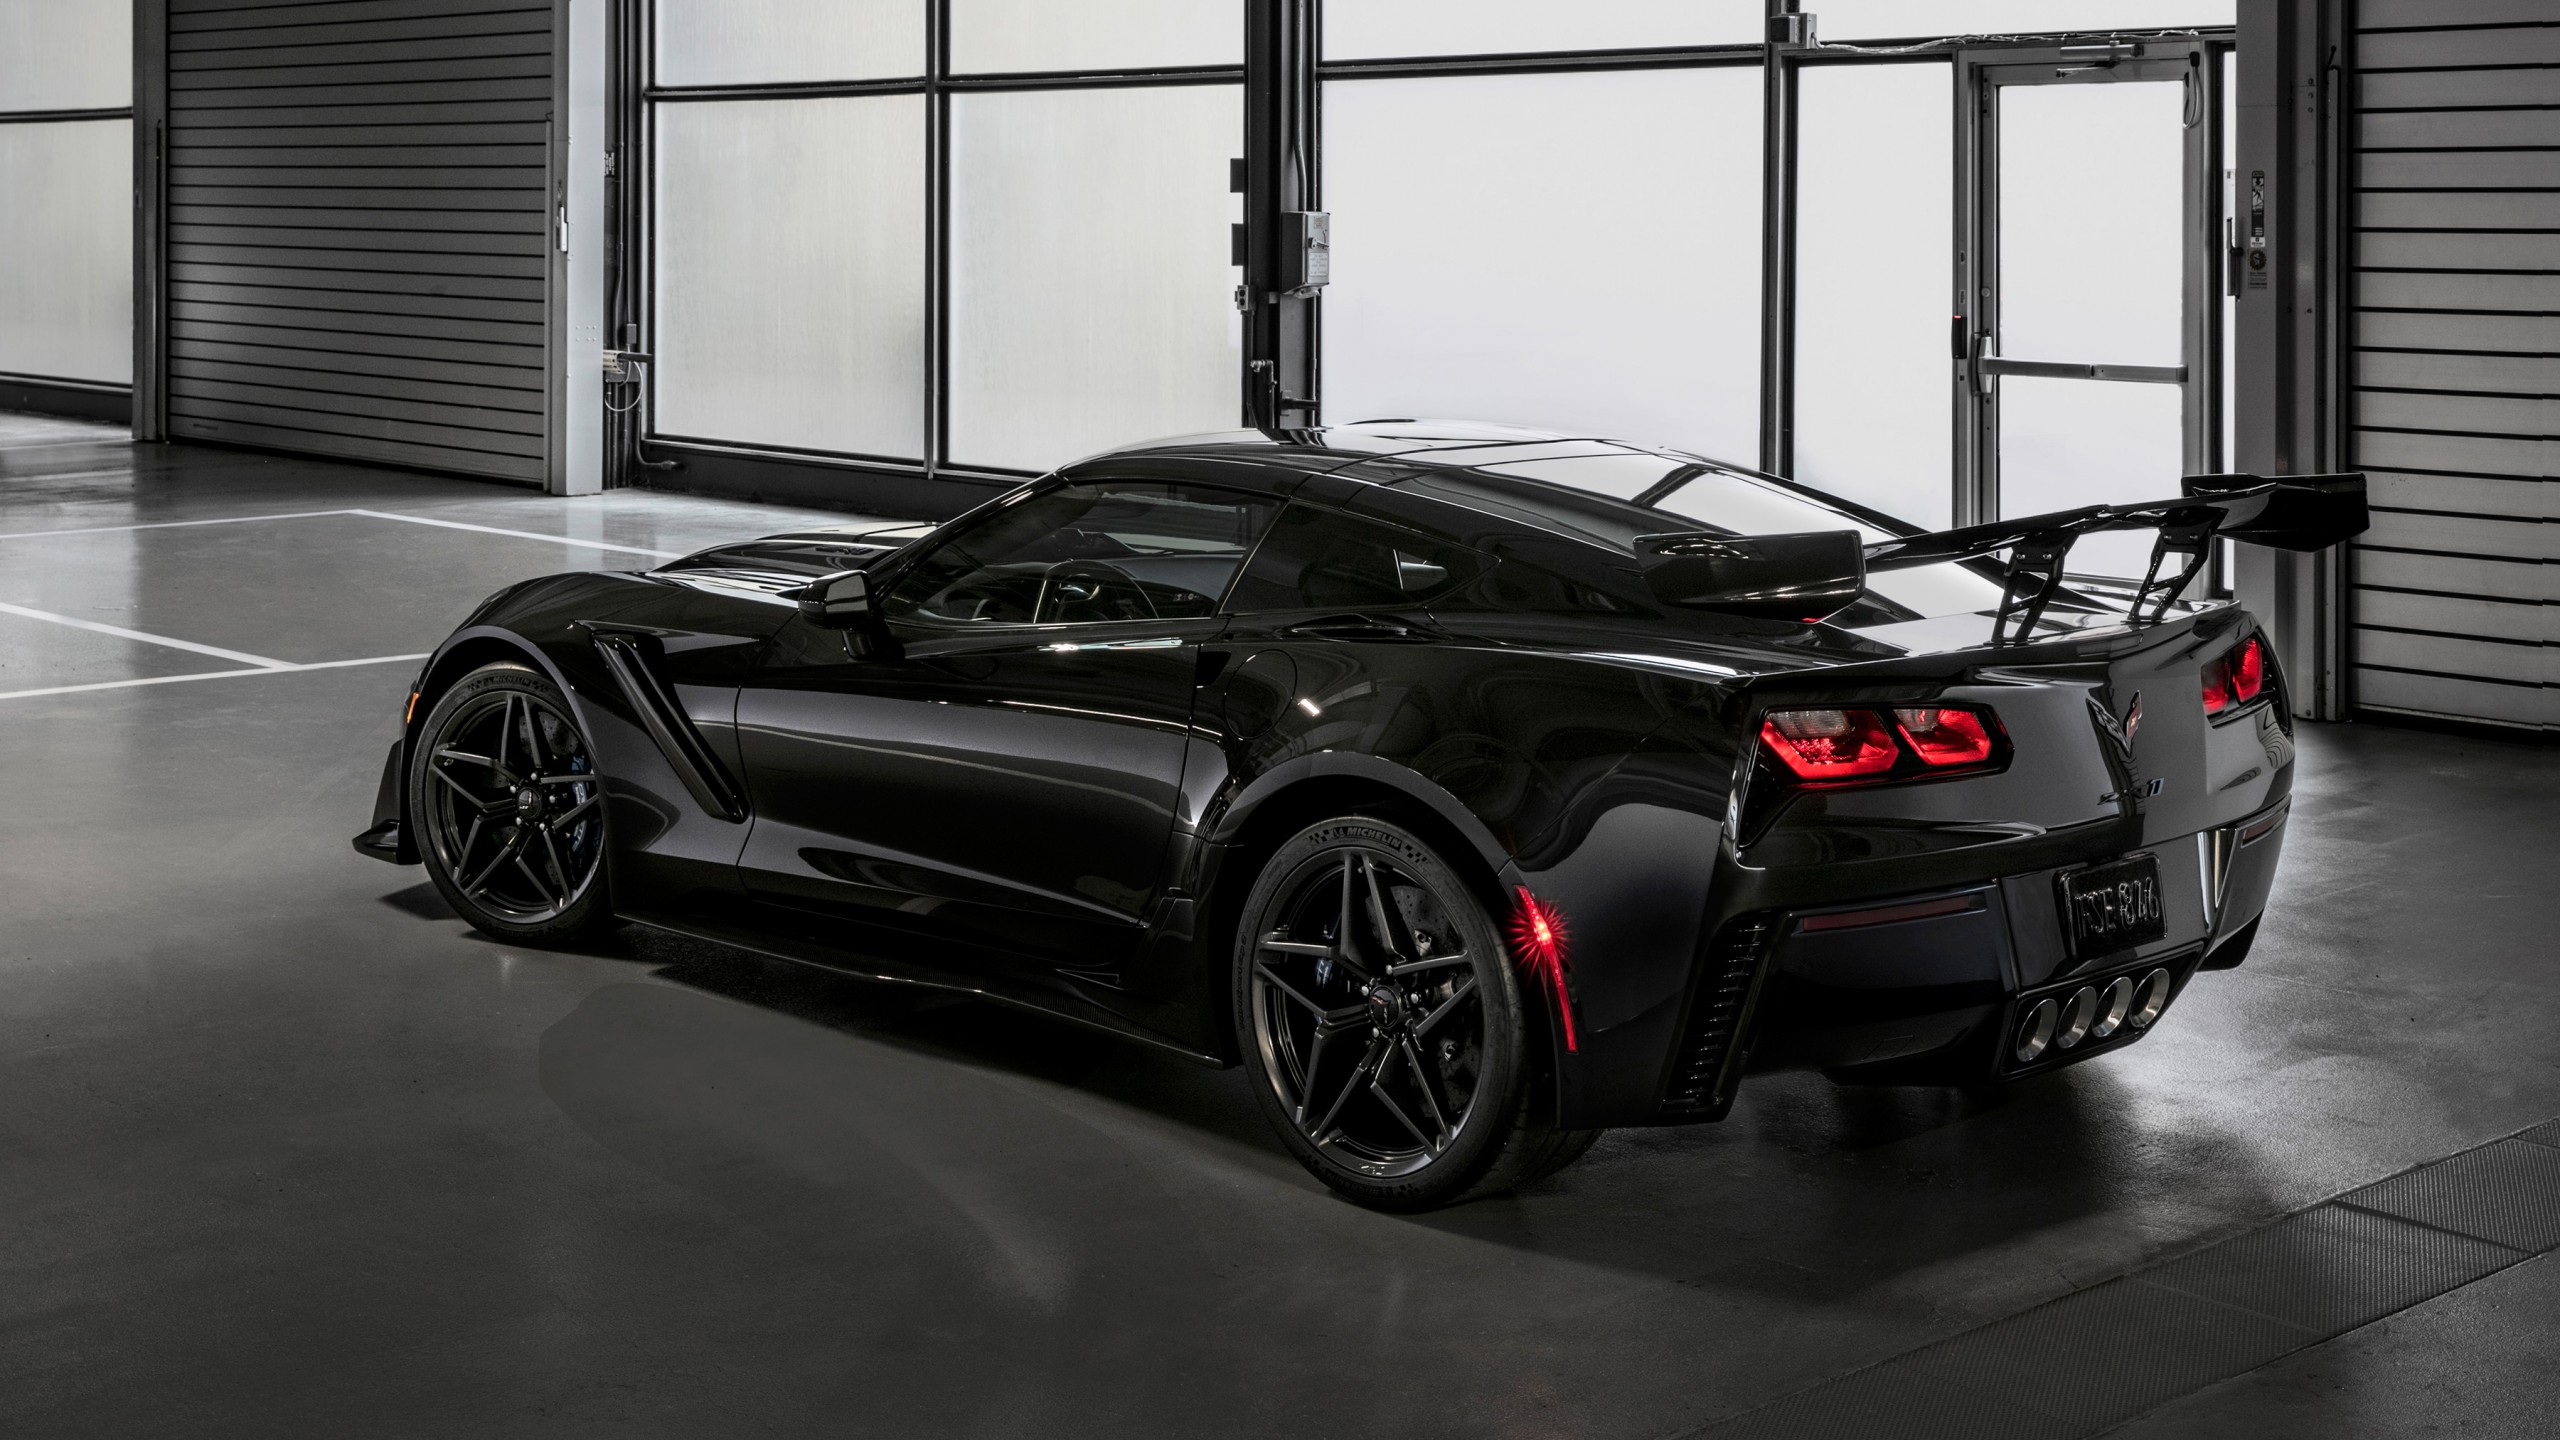 2019 Chevrolet Corvette ZR1 3 Wallpaper | HD Car ...